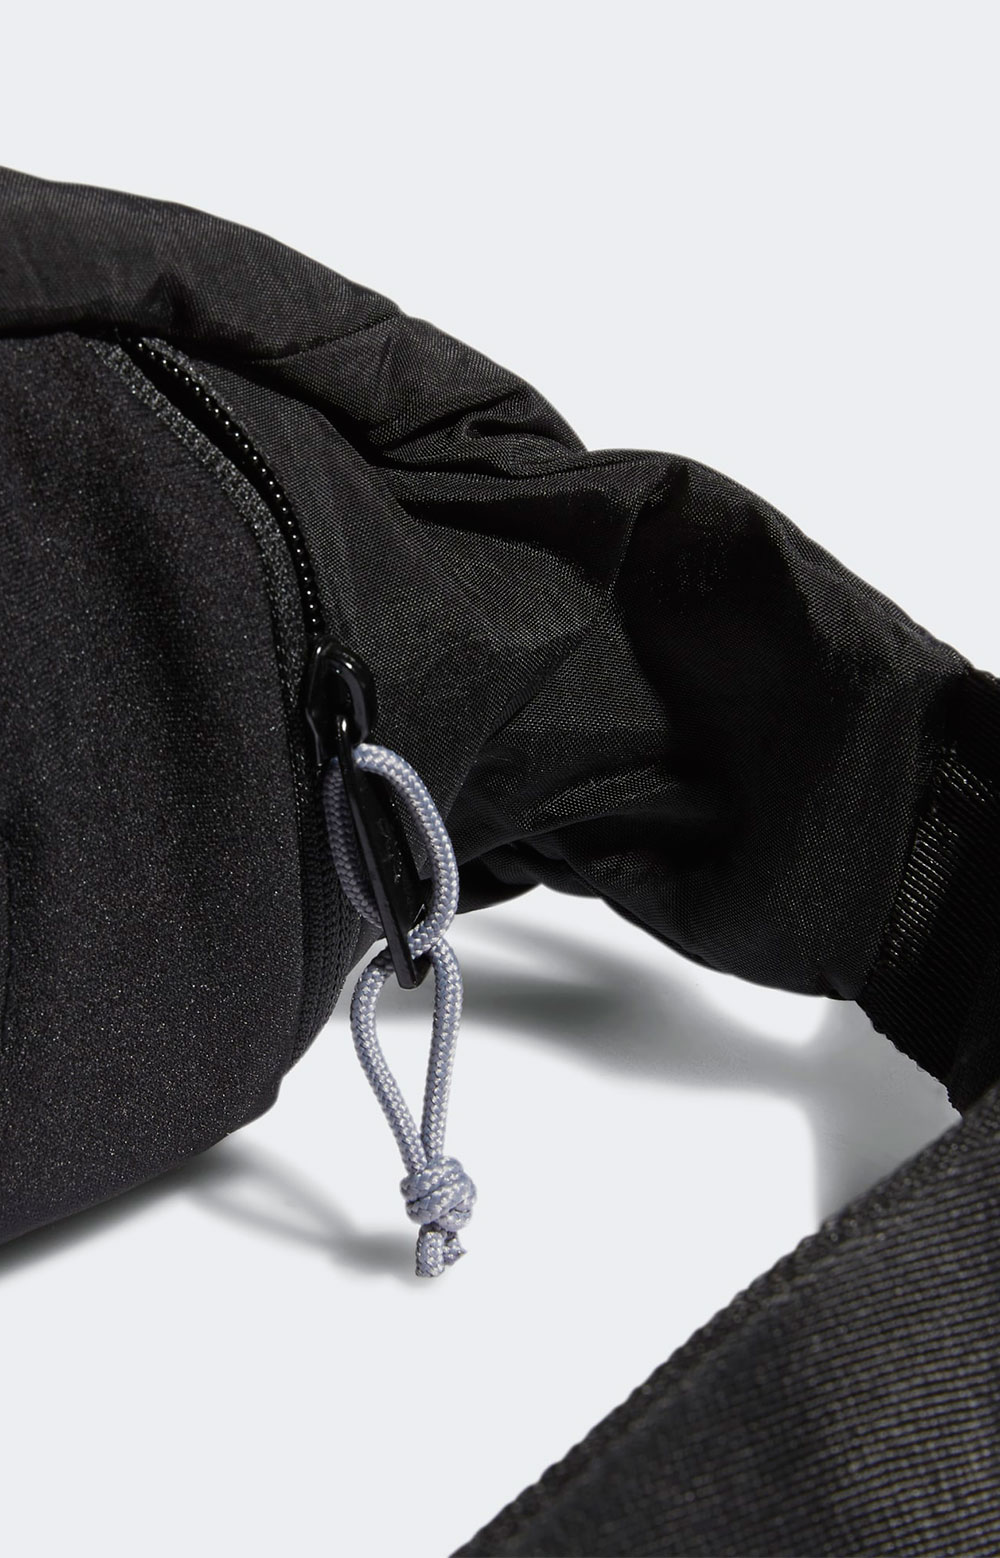 Urban Utility II Crossbody Bag - Black/Grey 4